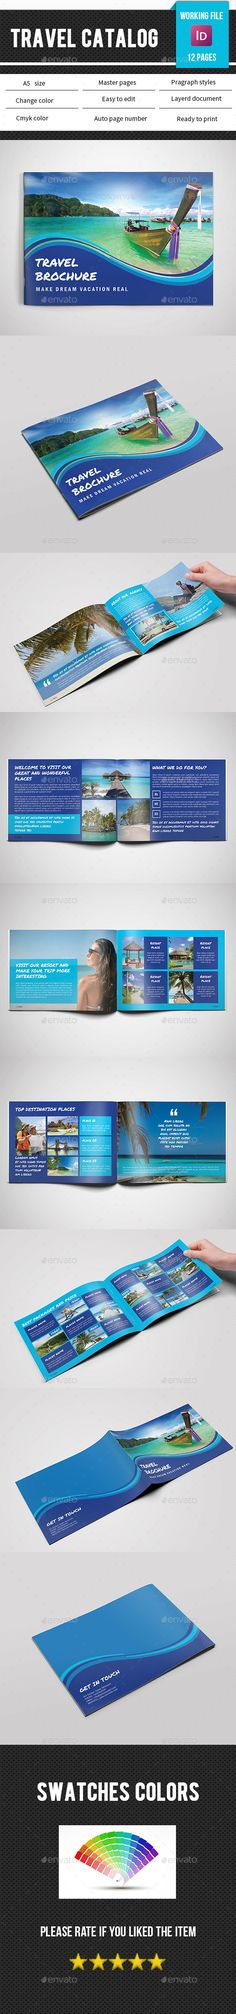 Travel Or Corporate Brochures GD Travel Template And Optimized - Indesign templates brochure